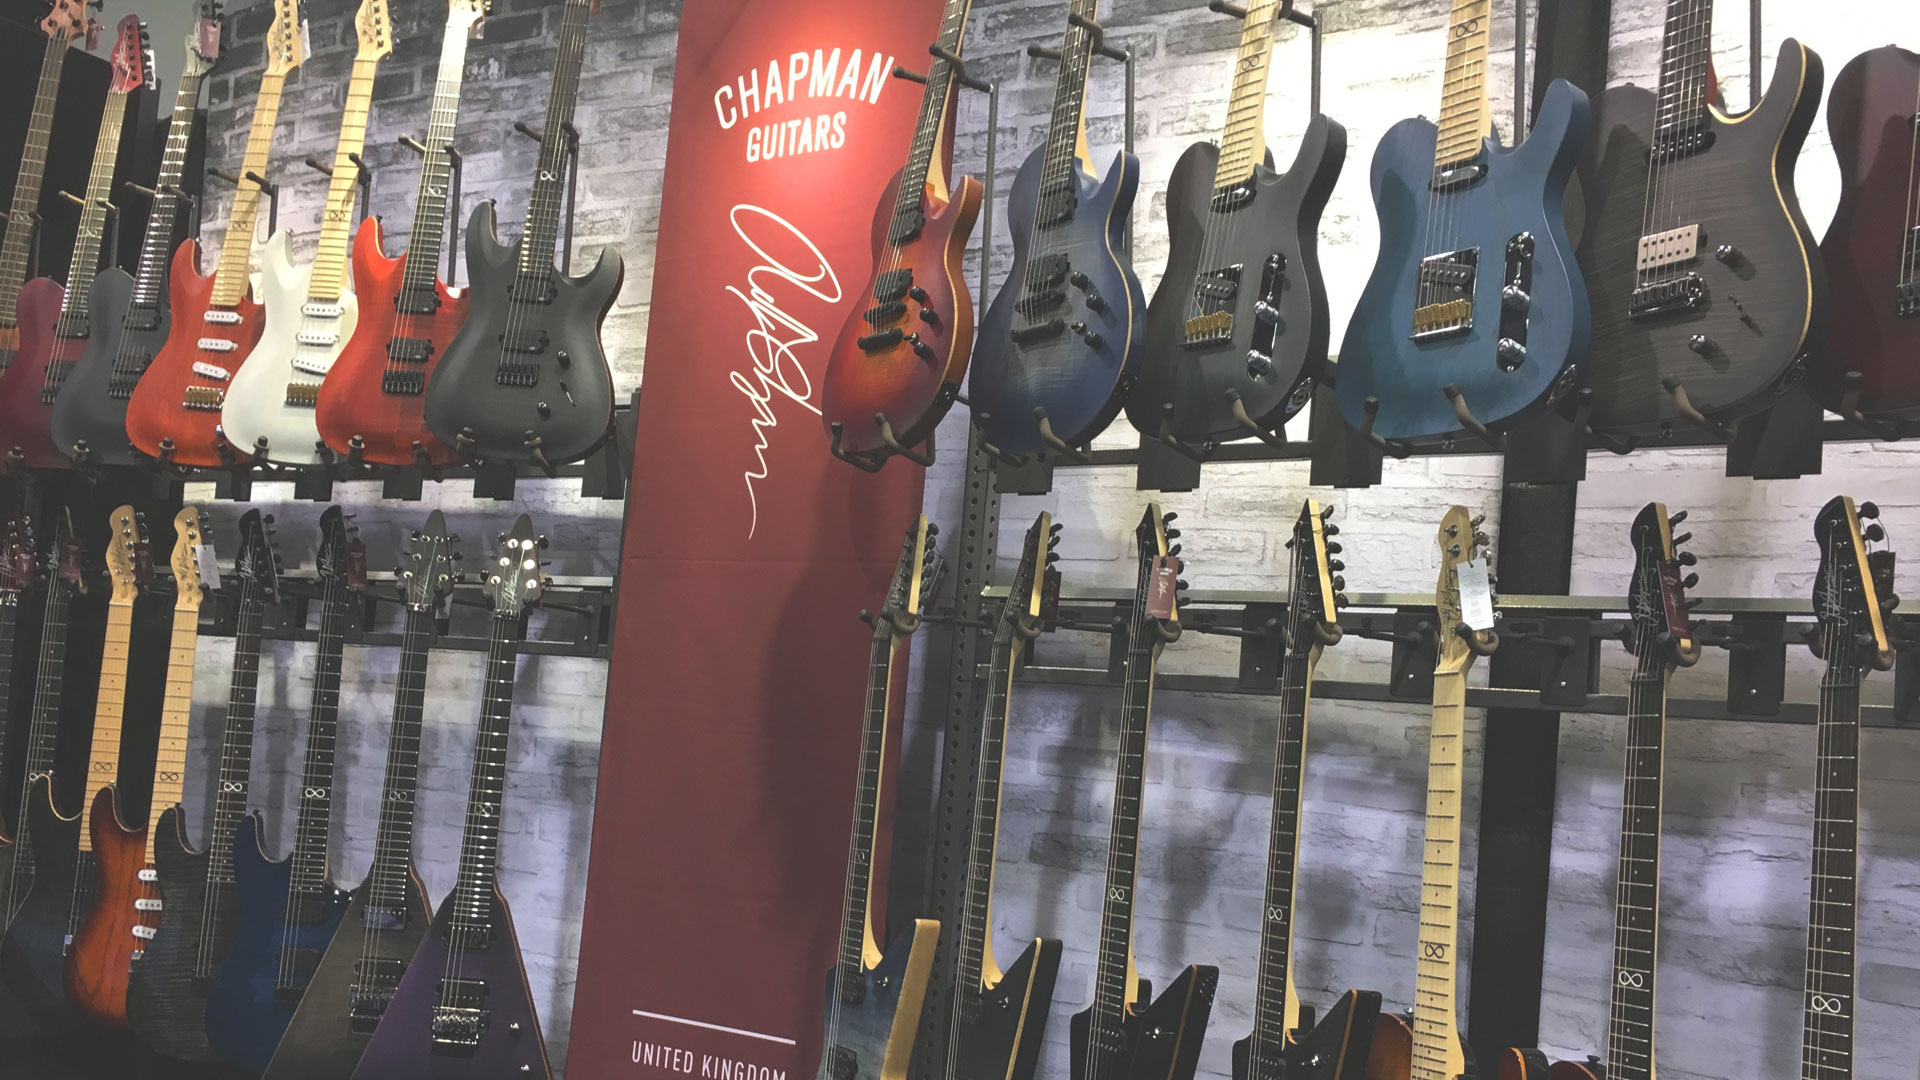 Leveraging YouTube to Create Brand Awareness Chapman Guitars